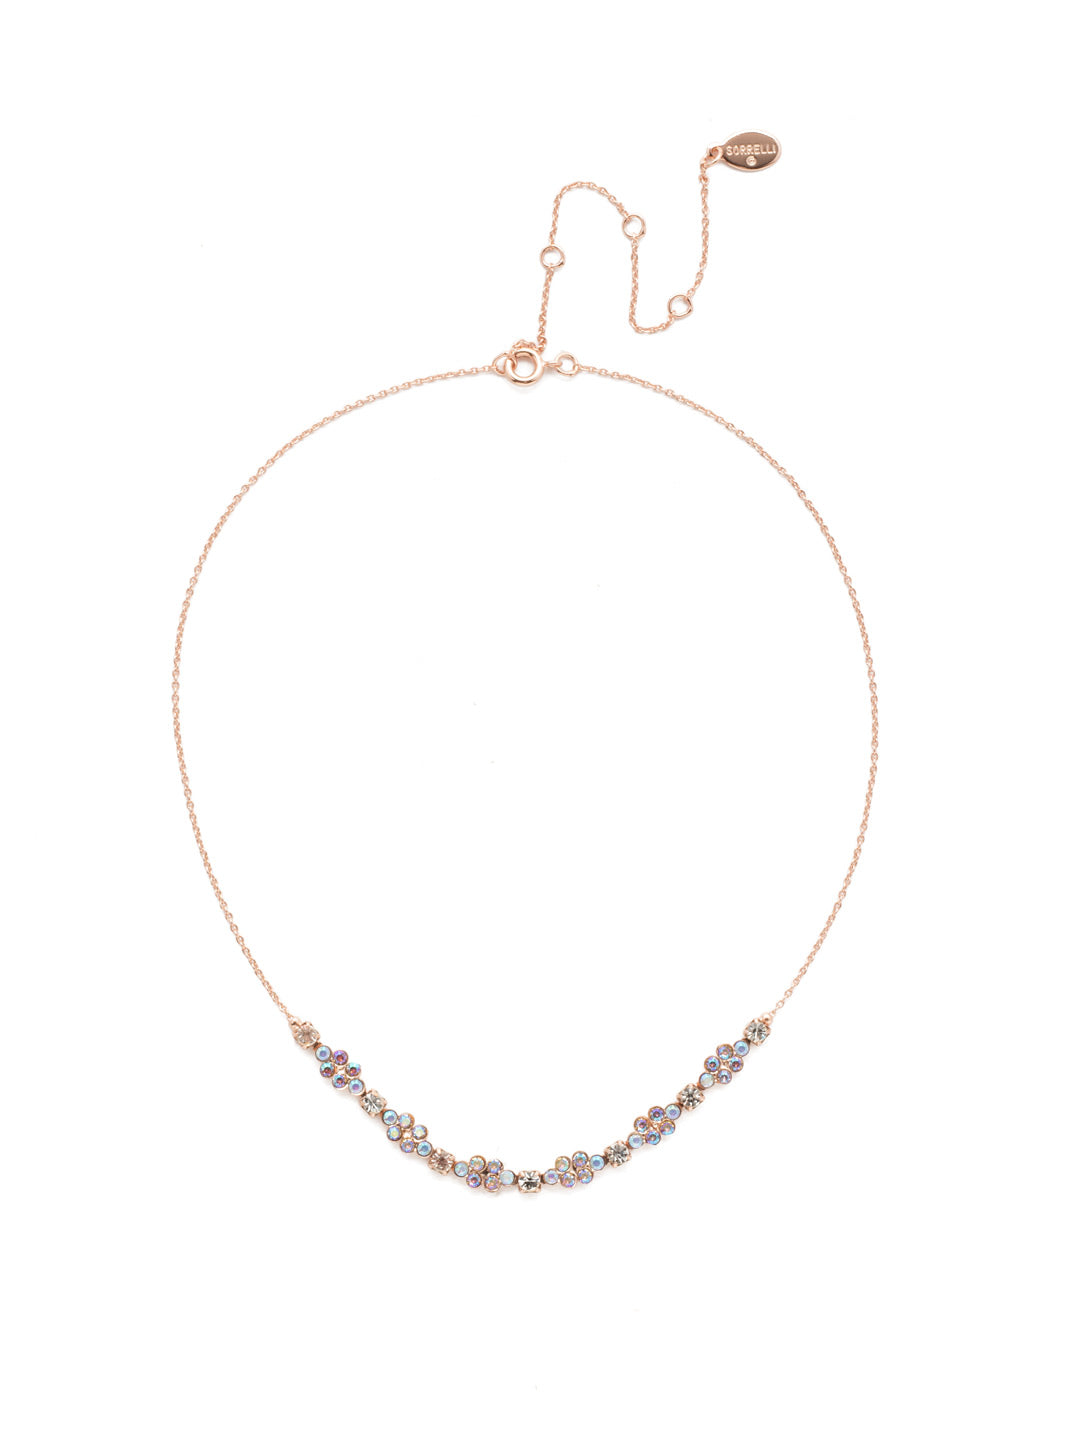 Mavis Tennis Necklace - NEN7RGROG